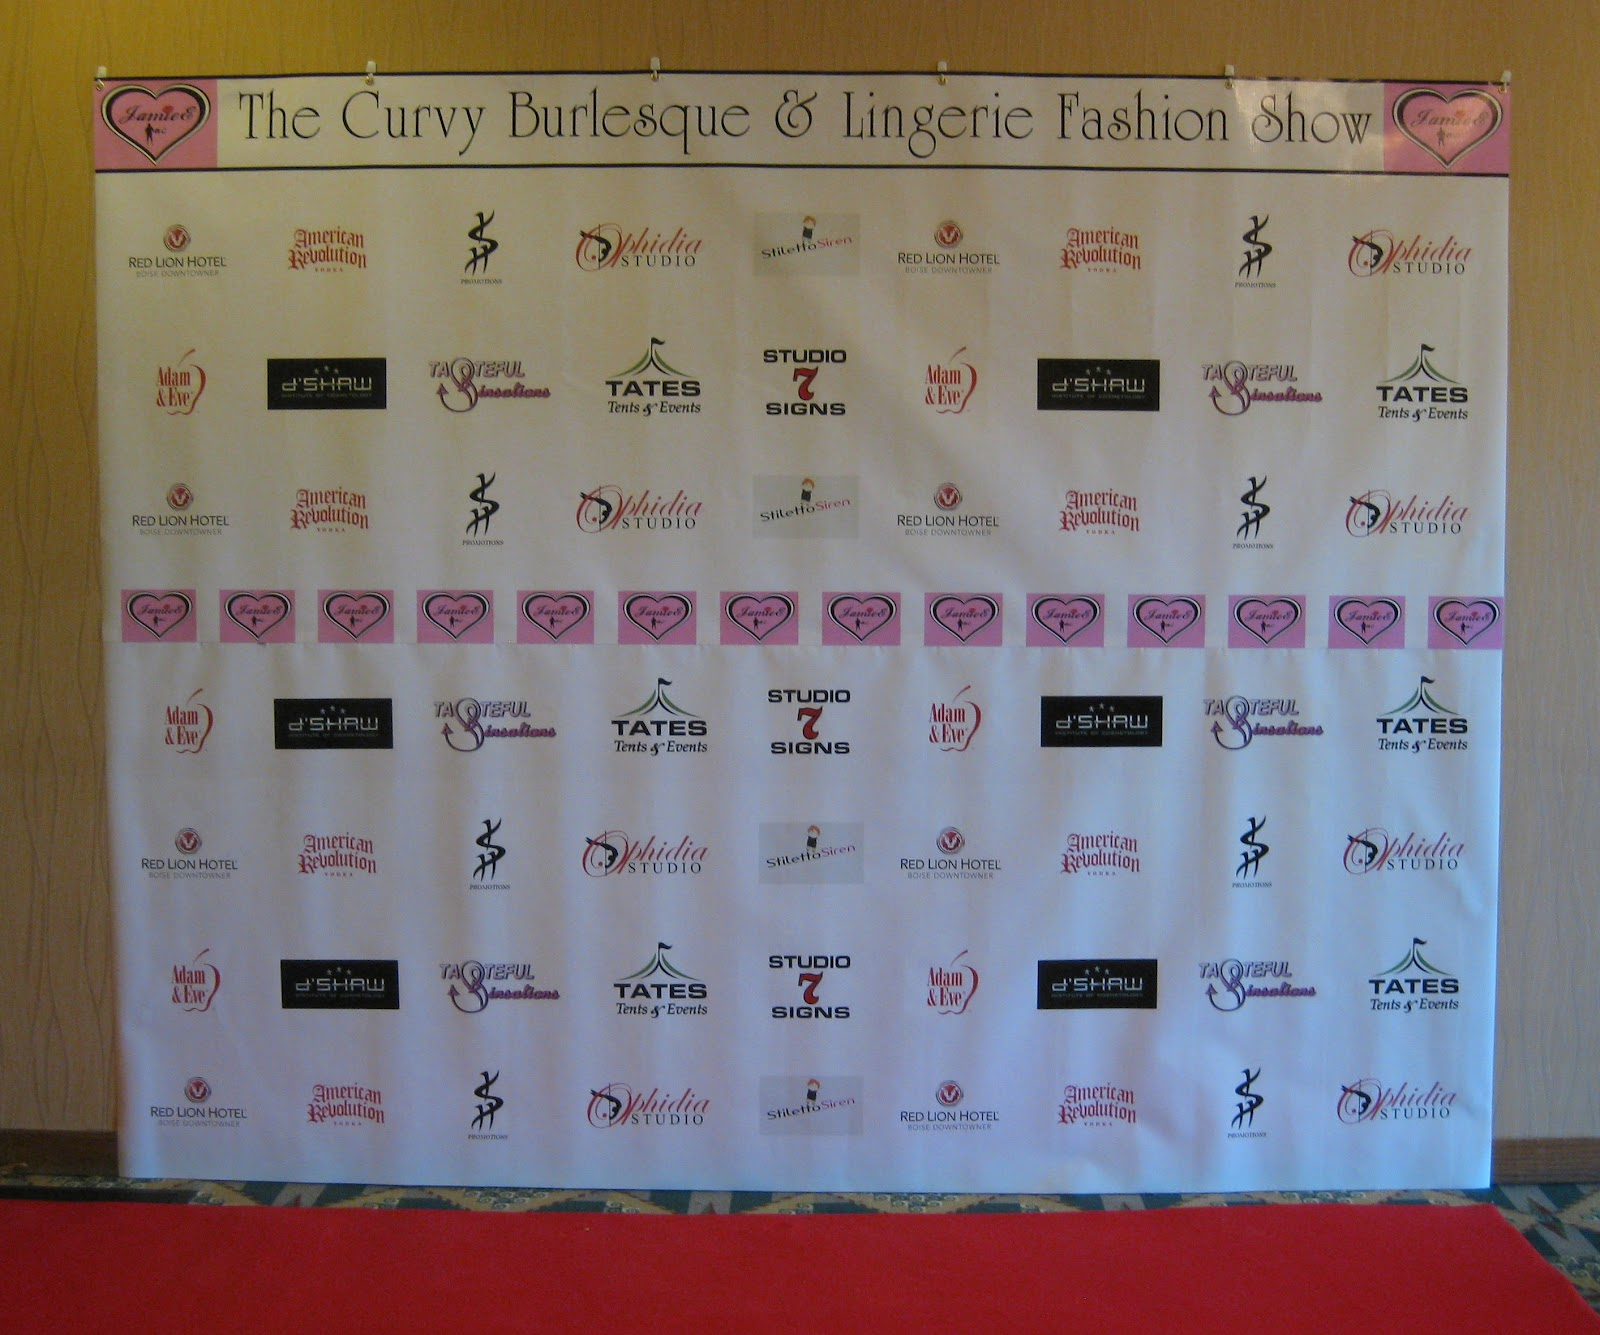 STUDIO 7 SIGNS Red Carpet Media Wall